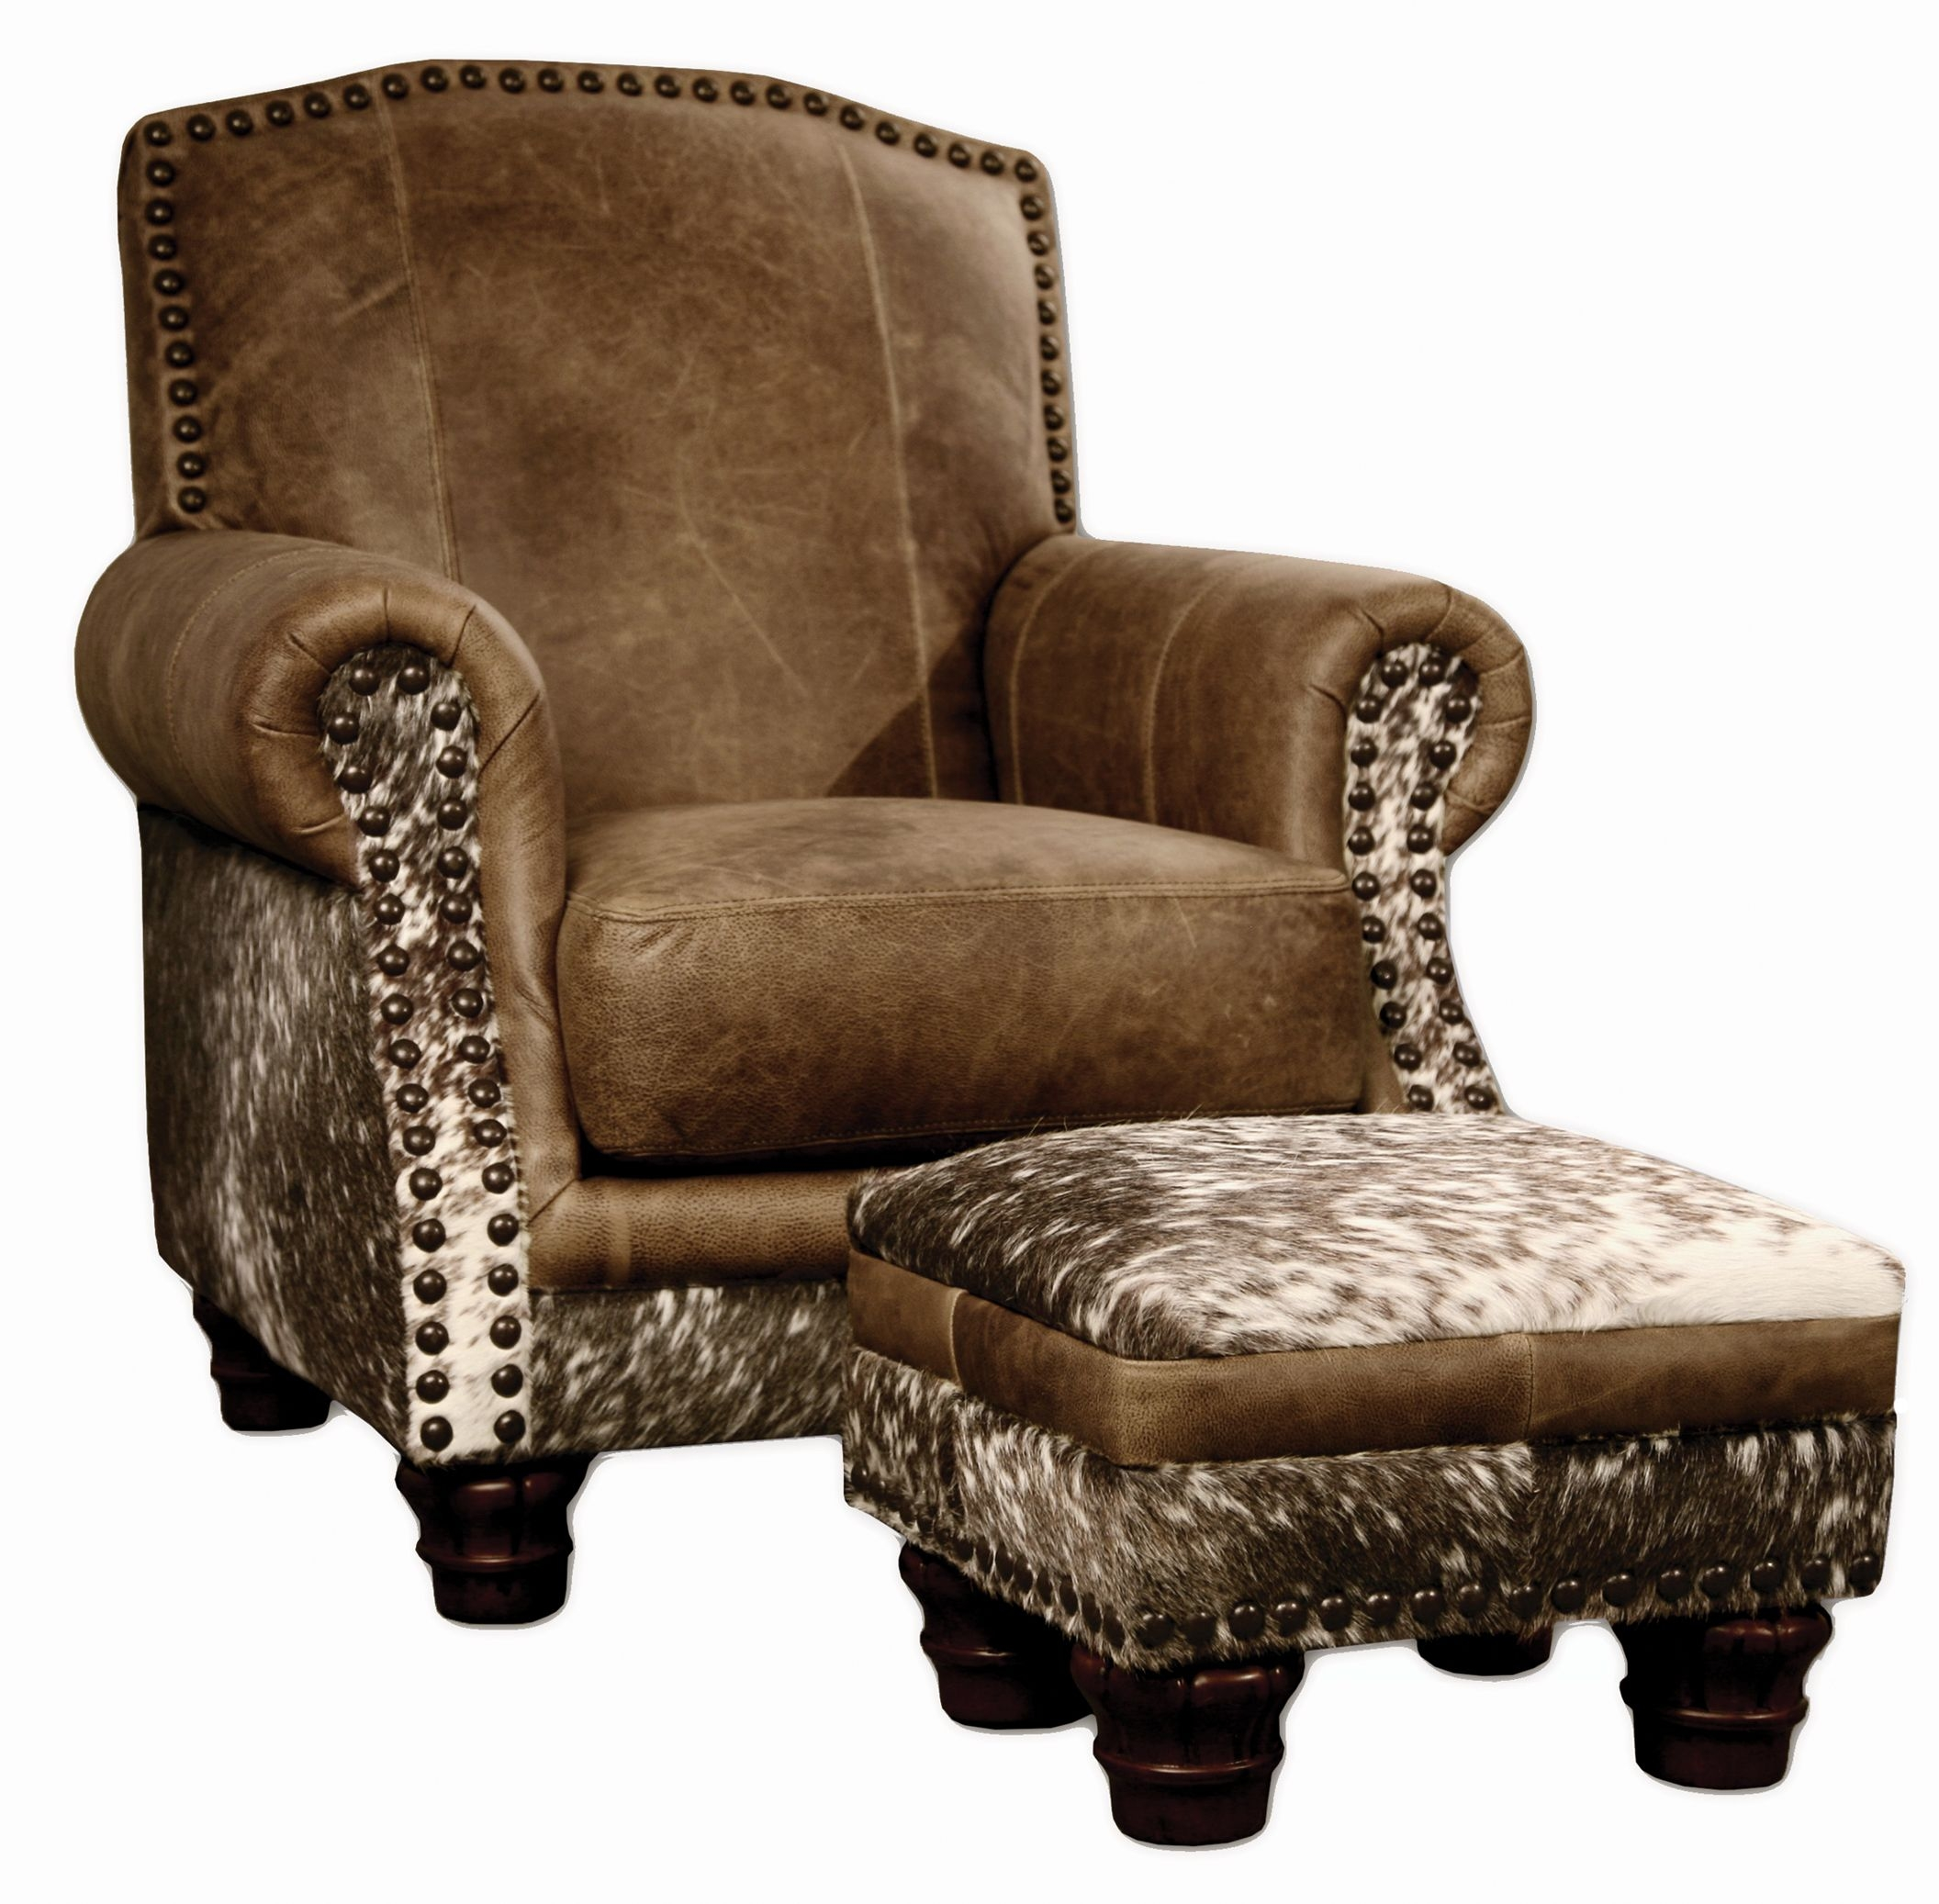 Delightful Western Style Leather Chairs